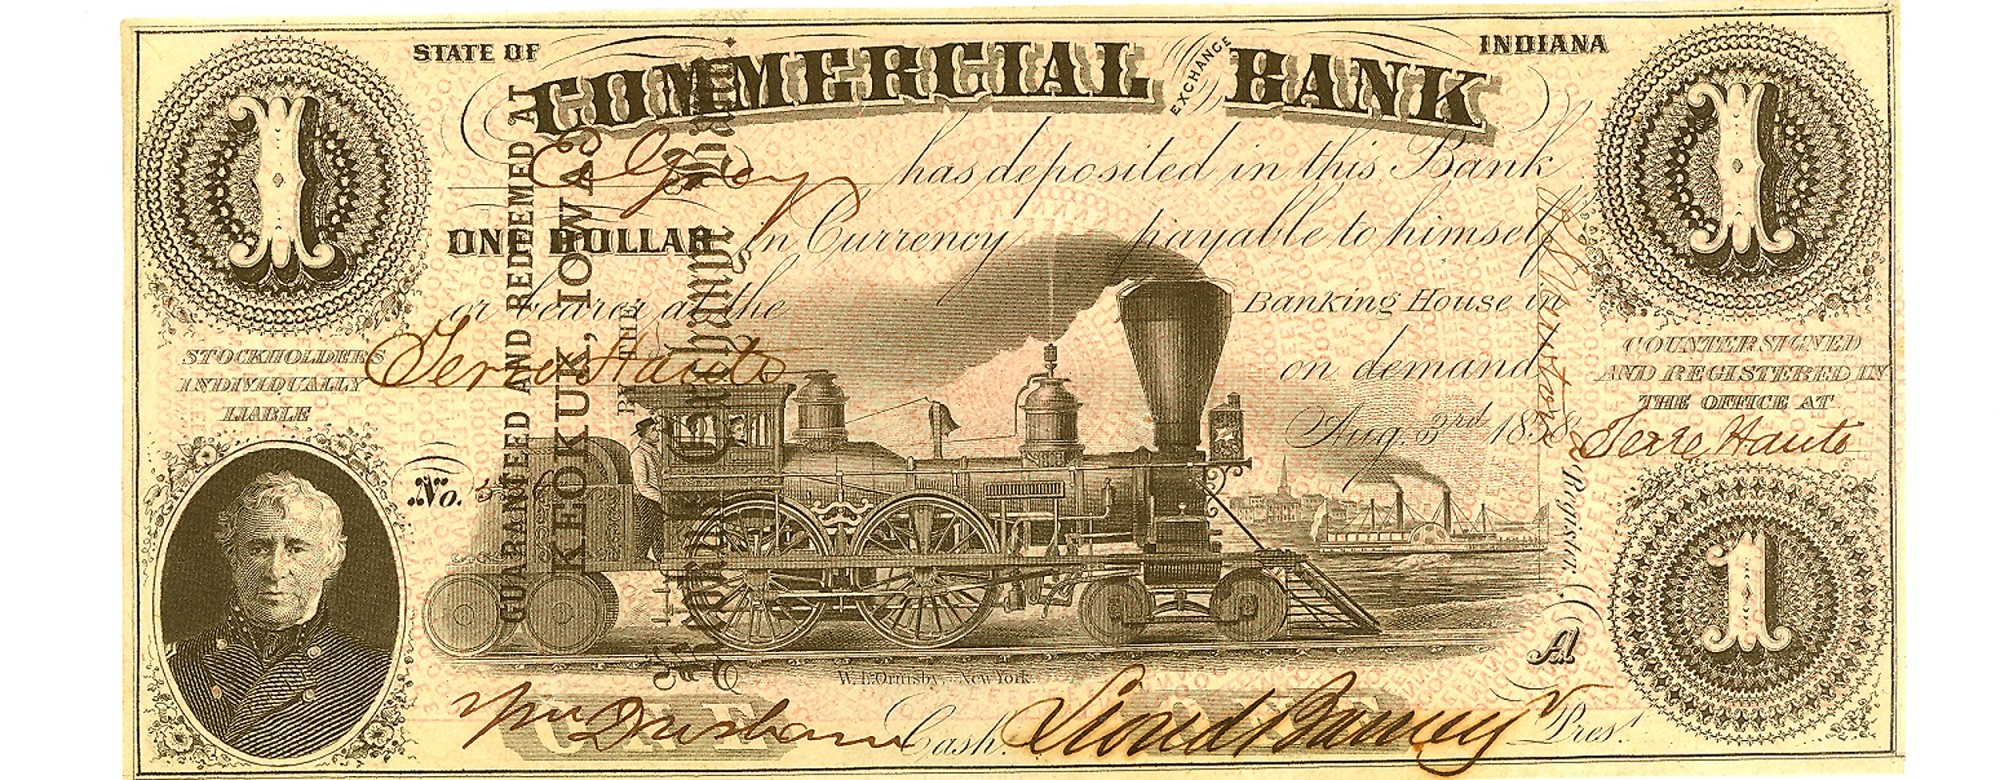 COMMERCIAL EXCHANGE BANK, INDIANA $1 NOTE